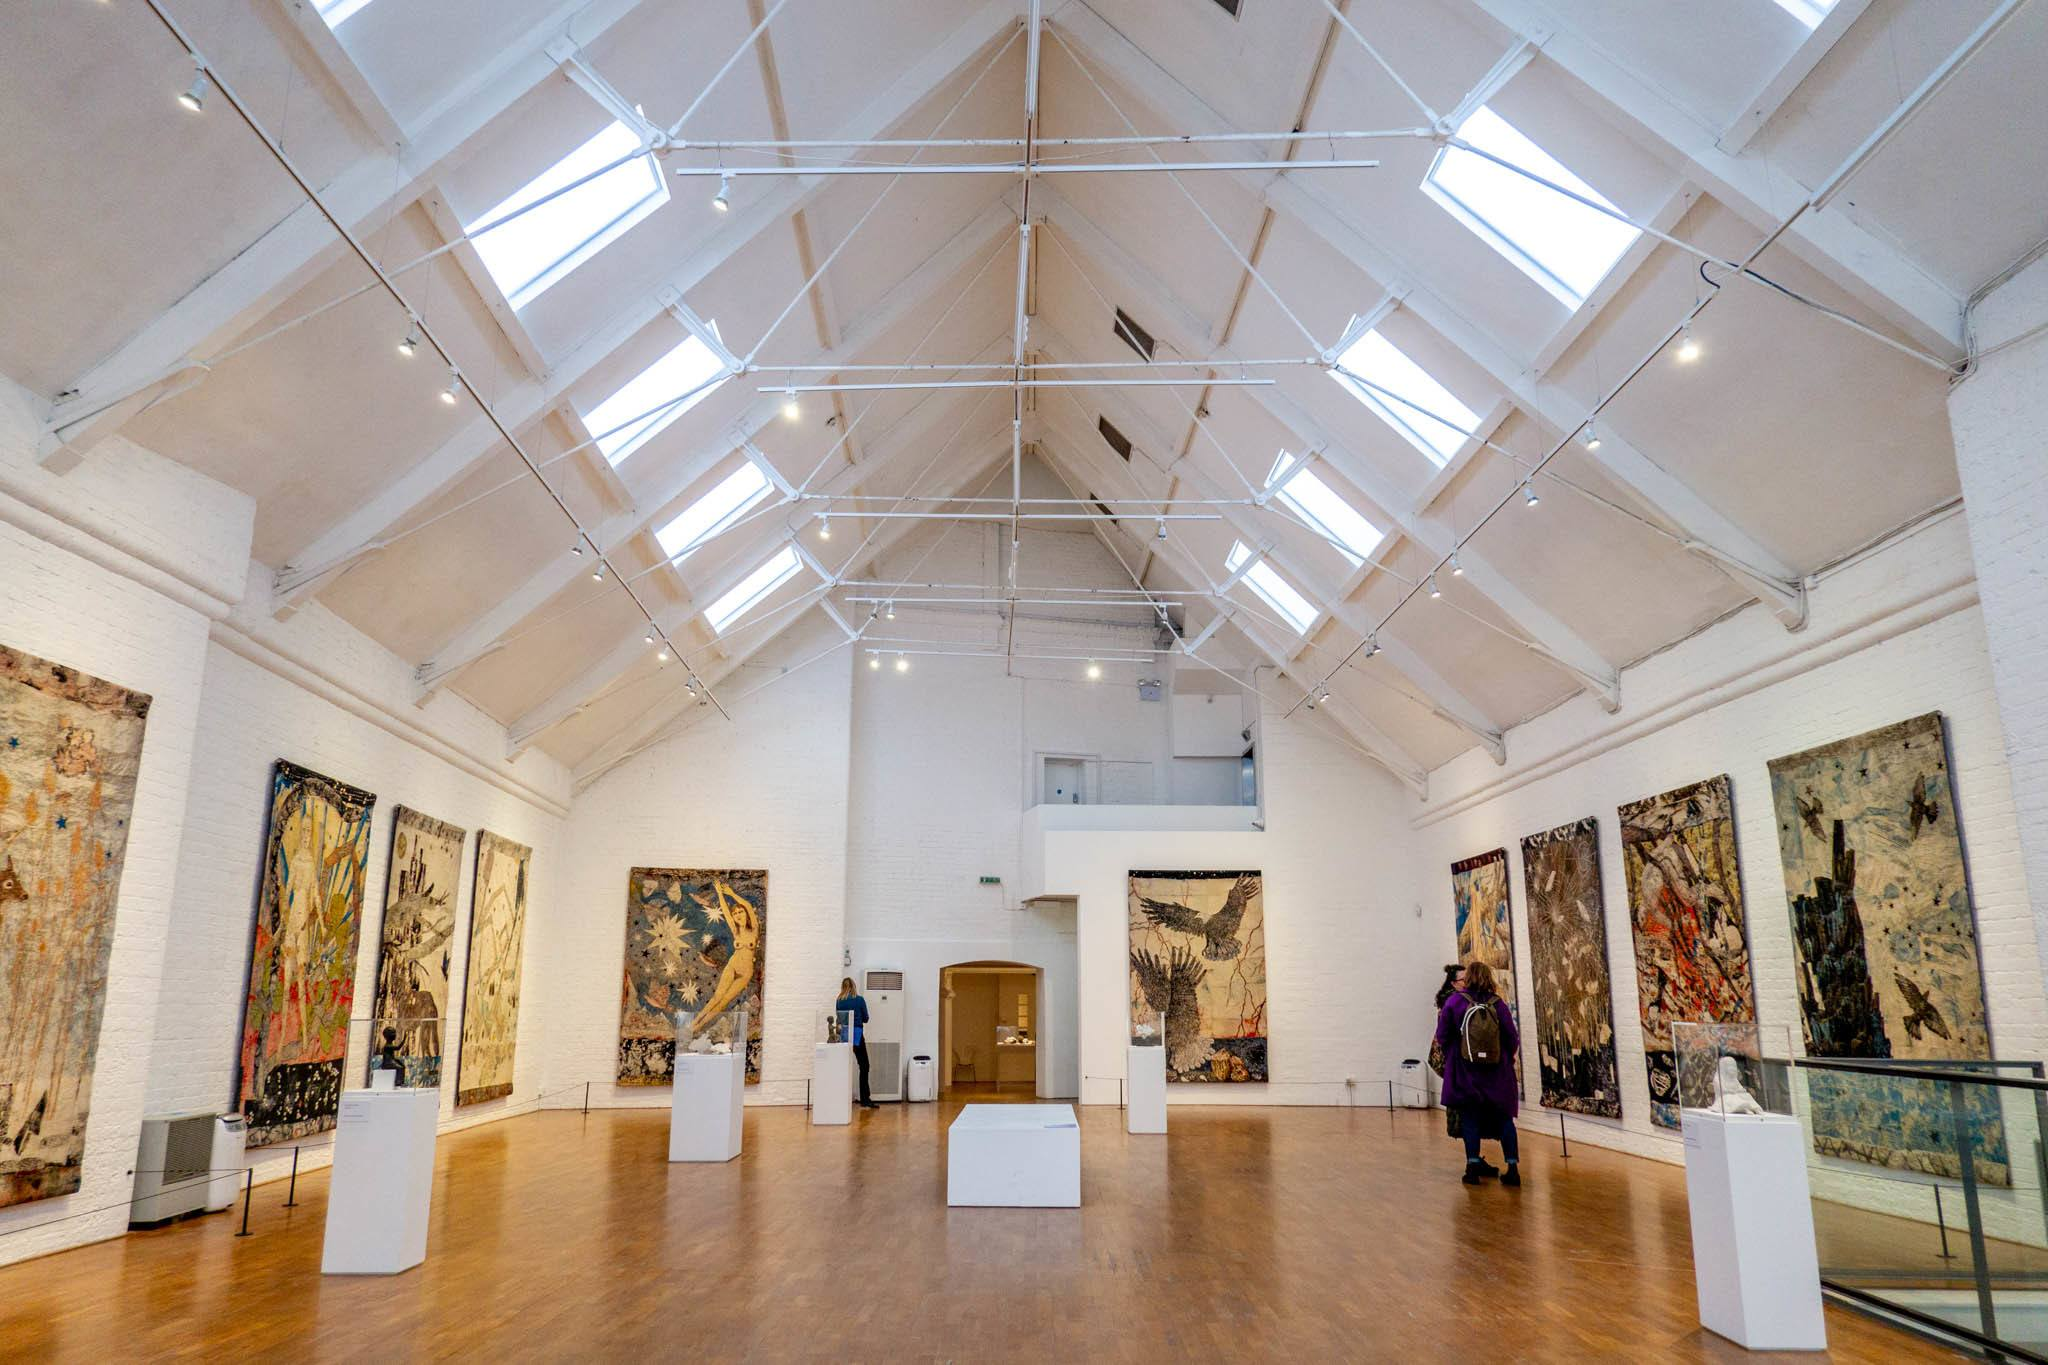 Large art gallery room with paintings on the walls at Modern Art Oxford